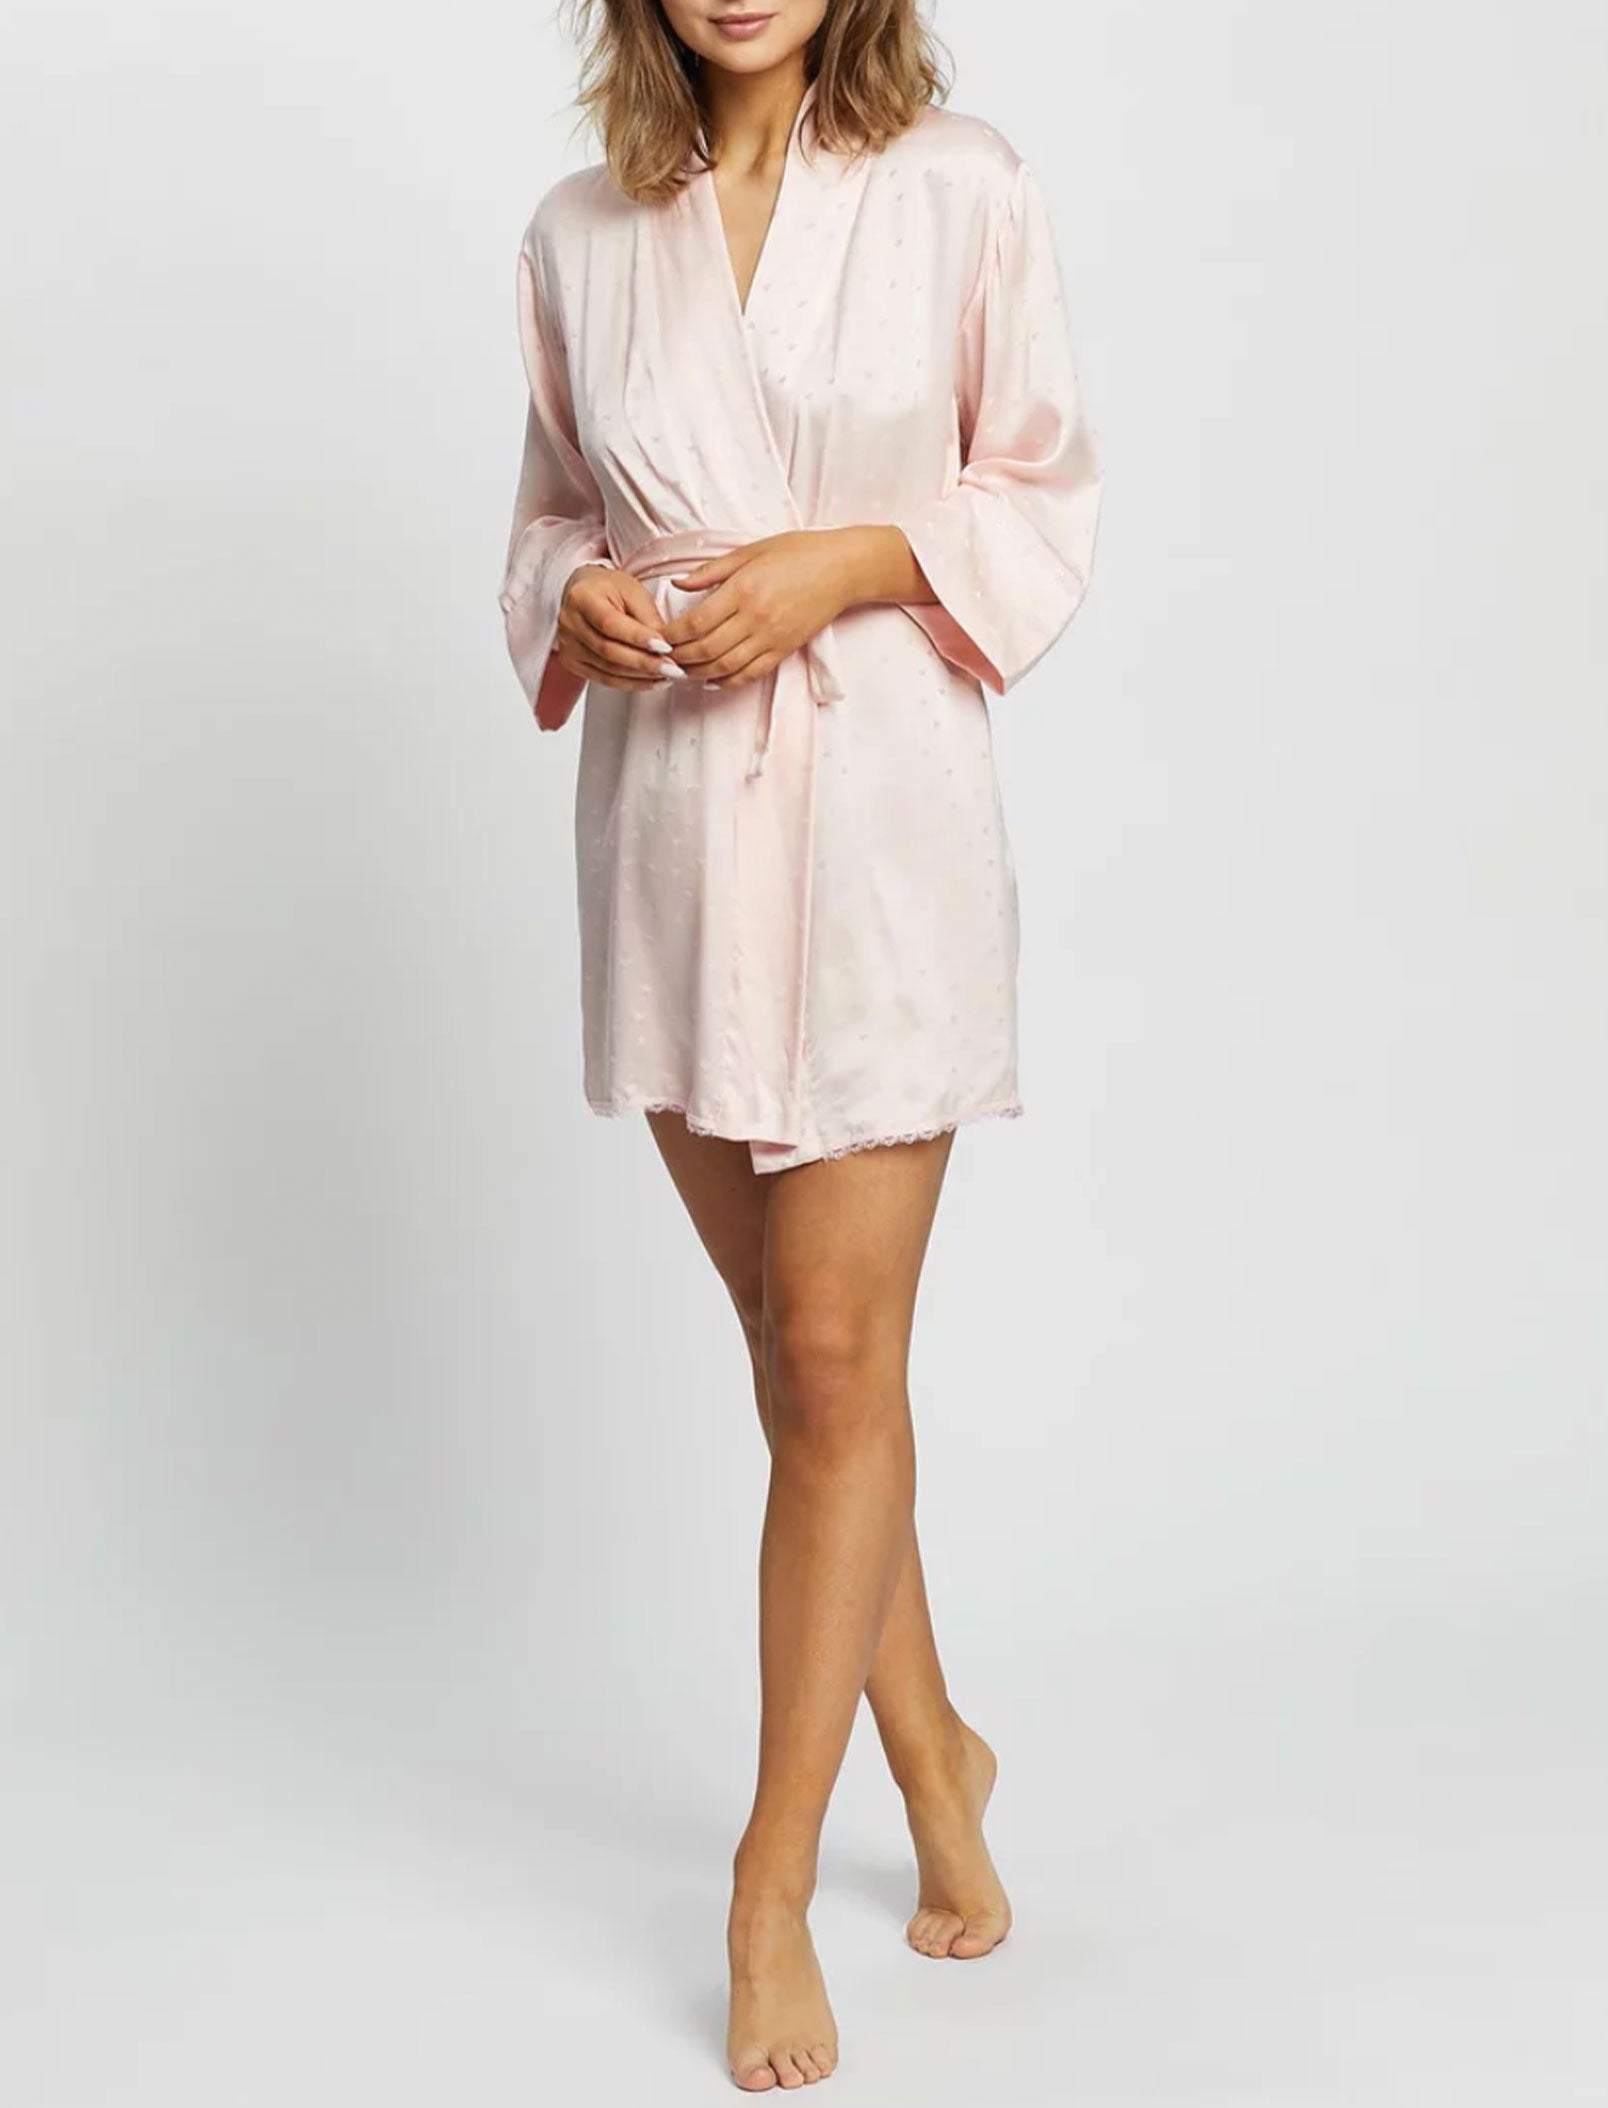 Silk Hearts Short Robe in Blush